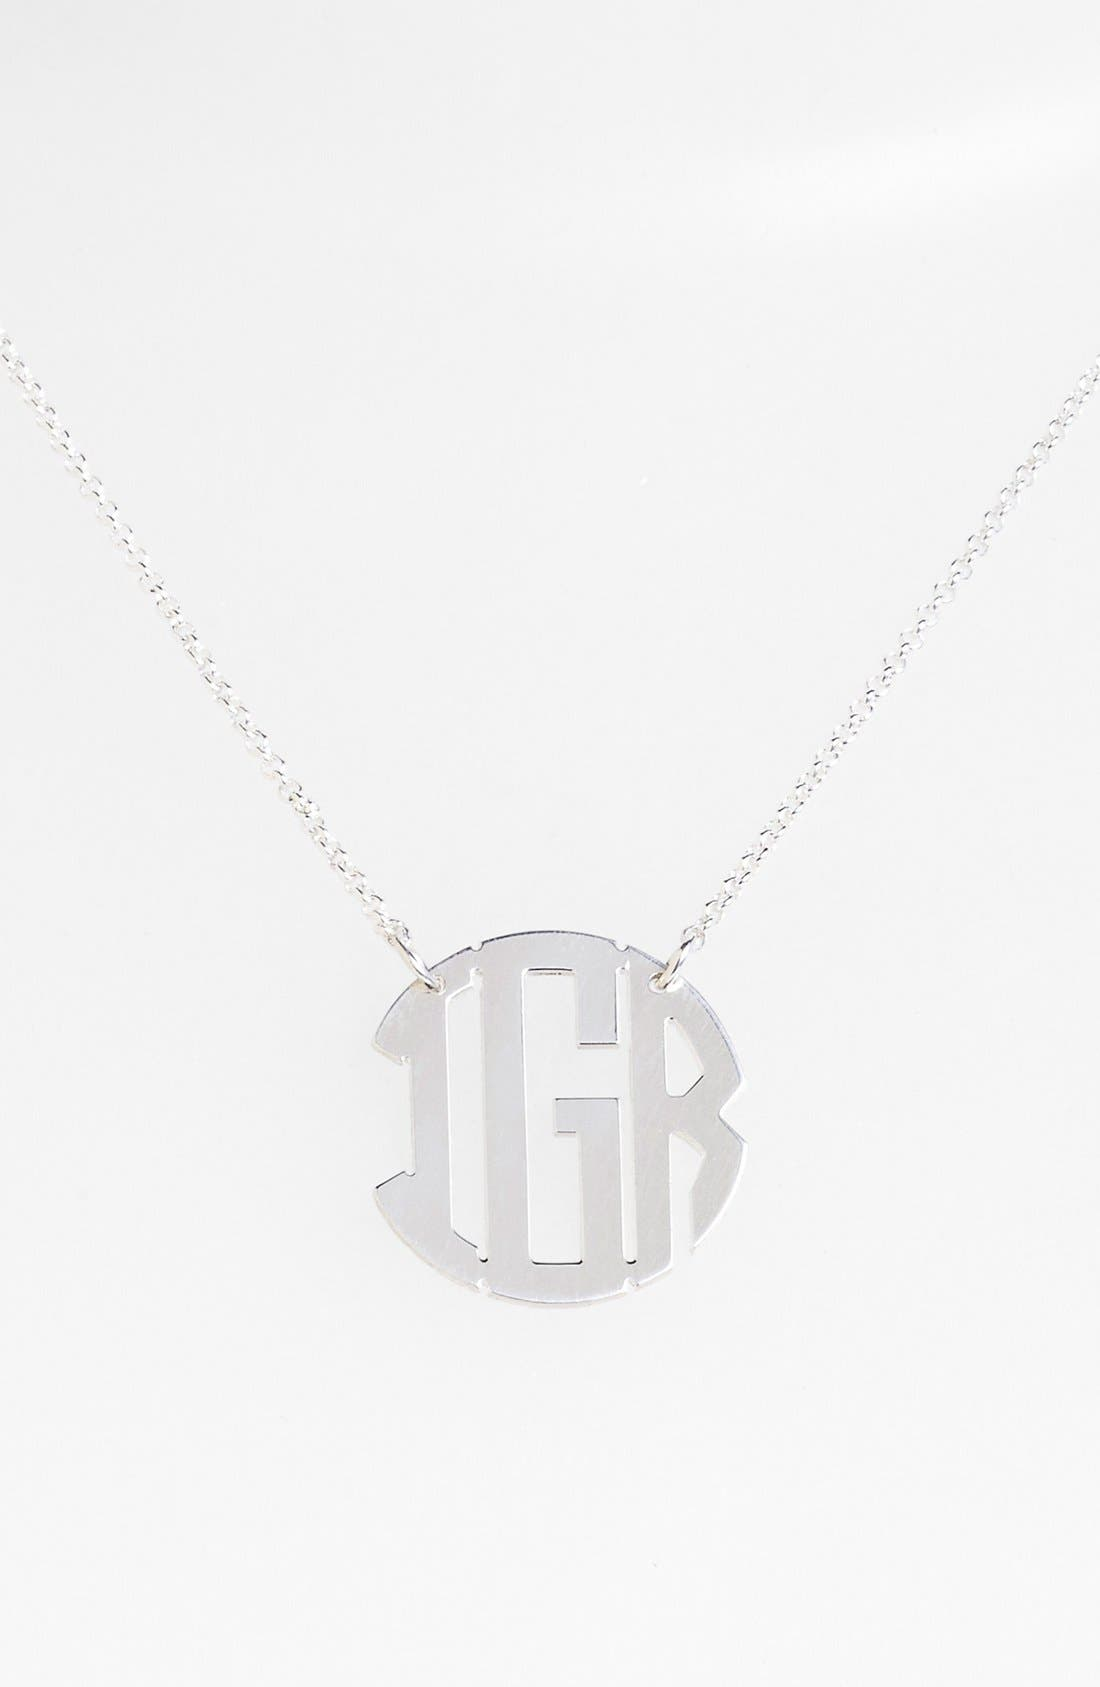 Personalized 3-Initial Block Monogram Necklace,                             Main thumbnail 1, color,                             Silver